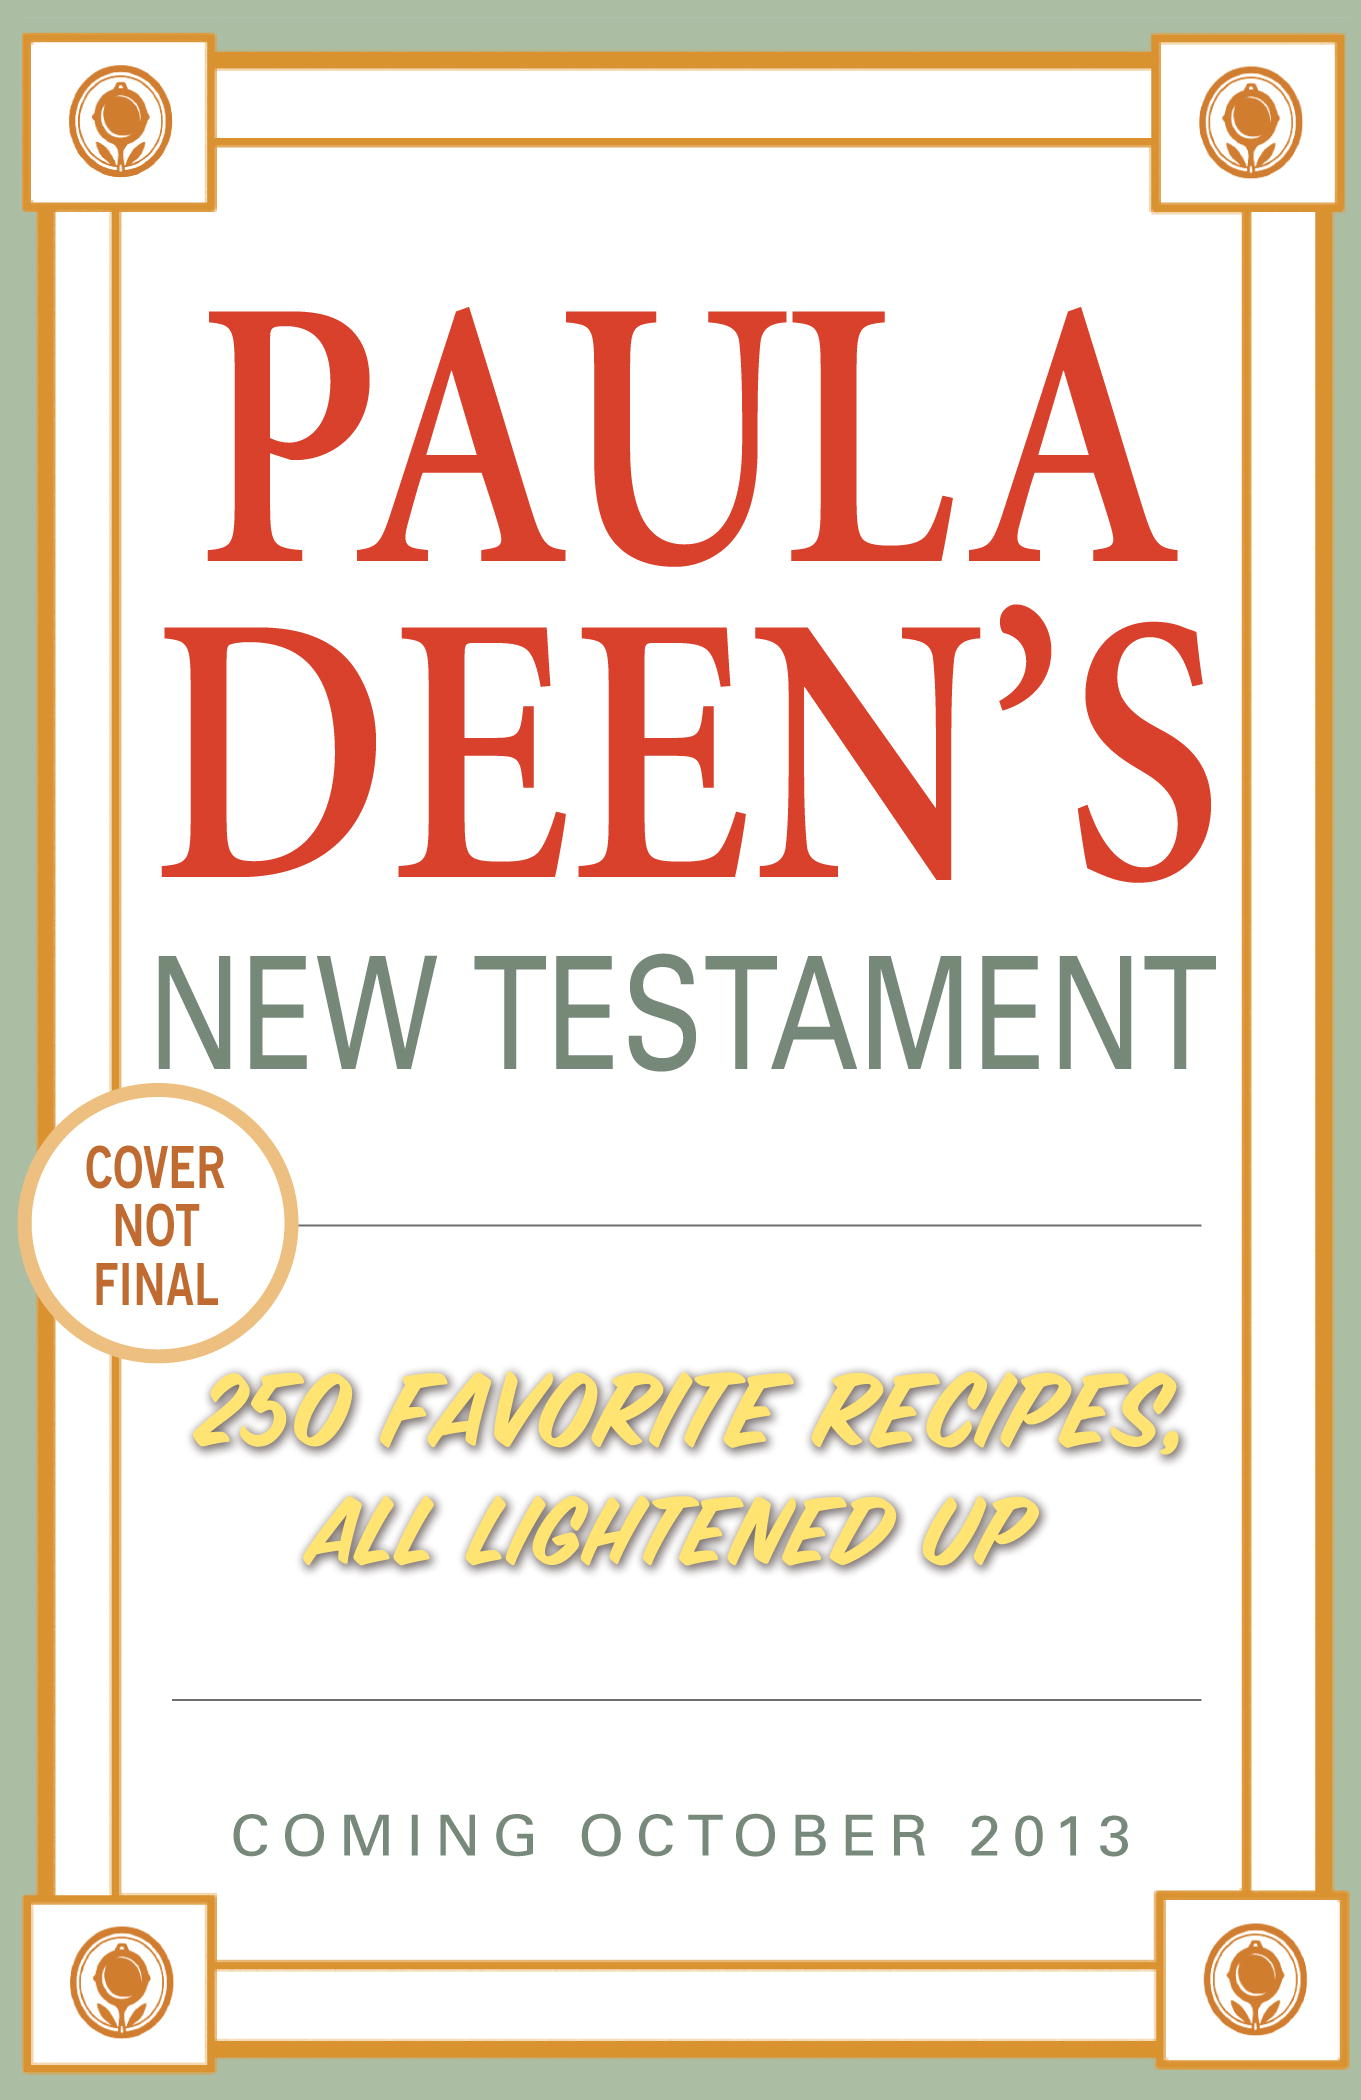 Paula Deen's New Testament